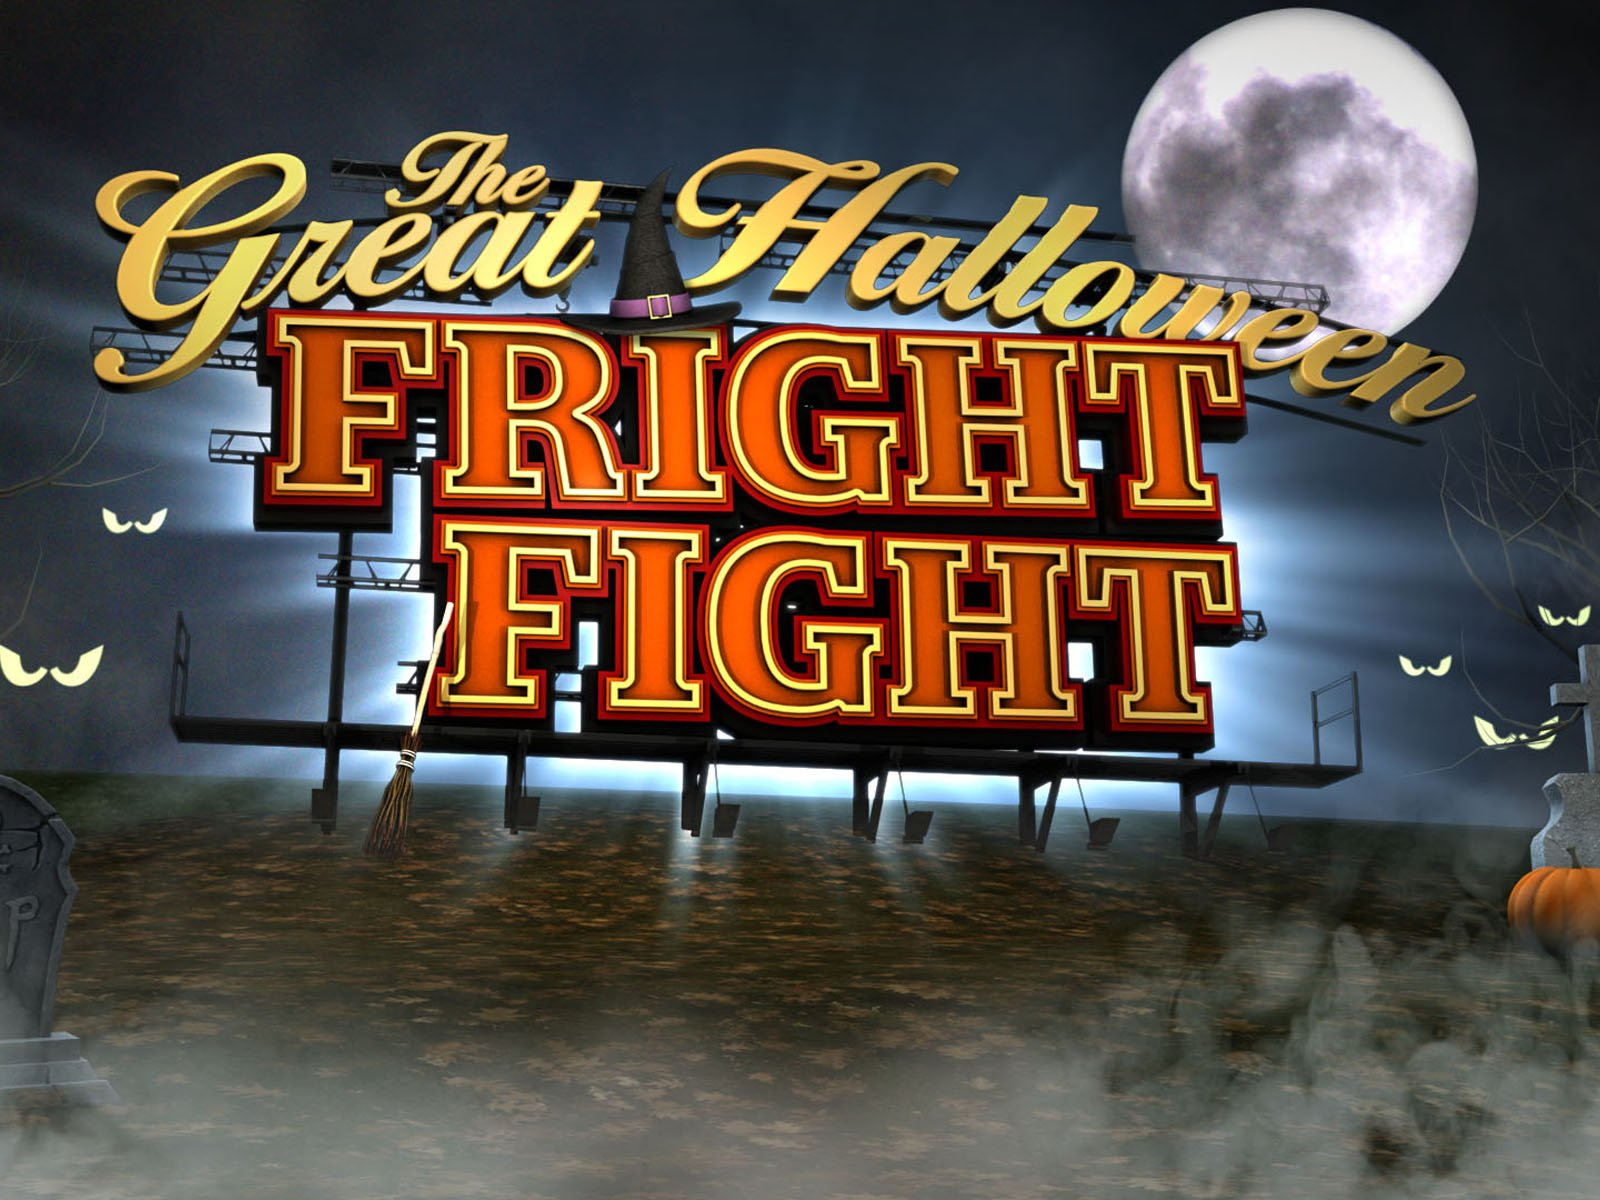 Abc Great Halloween Fright Fight 2020 Watch The Great Halloween Fright Fight Season 1 | Prime Video